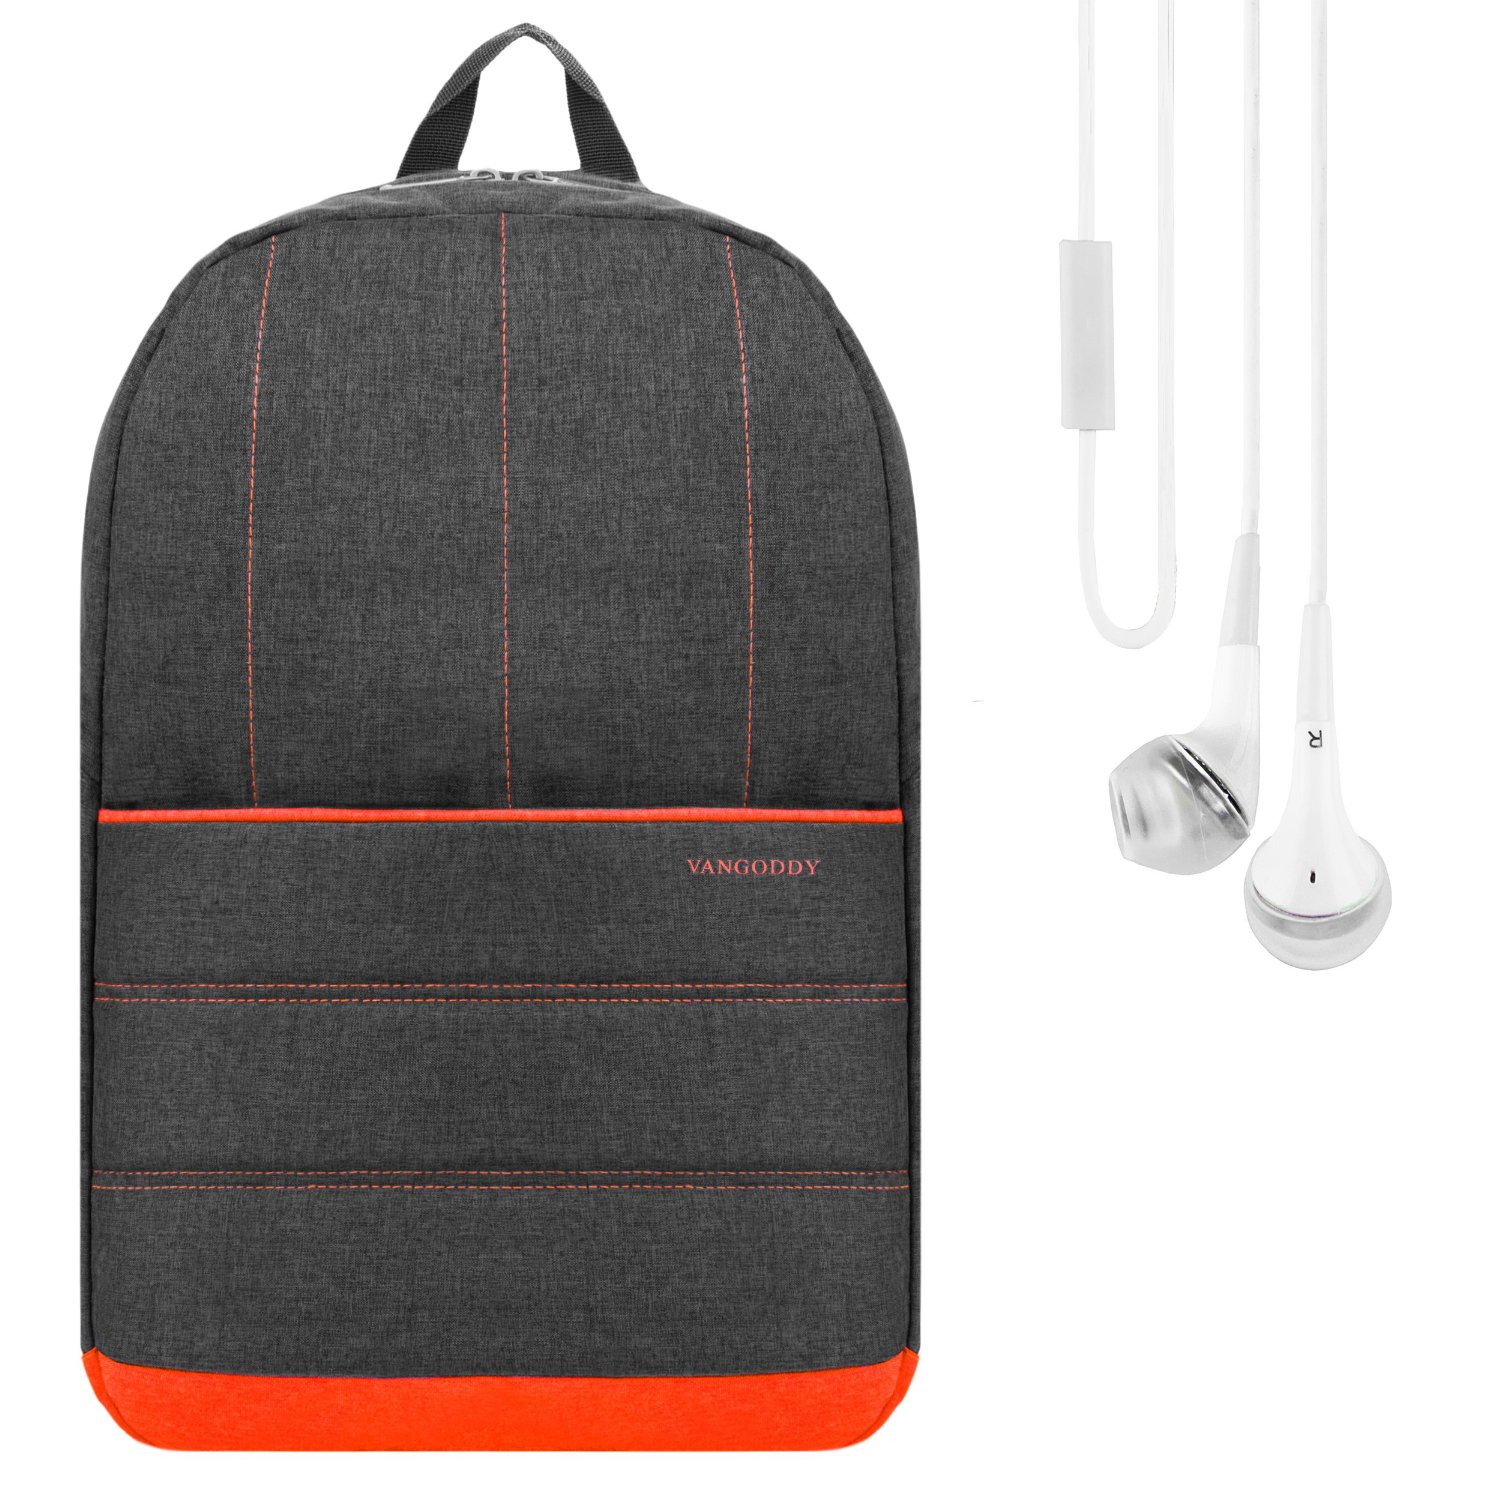 Vangoddy Grove School Bookbag Backpack Rucksack (Coral Orange) for Dell Inspiron 13 / 14 / 15 Series Laptop + Stereo Earphone with Mic